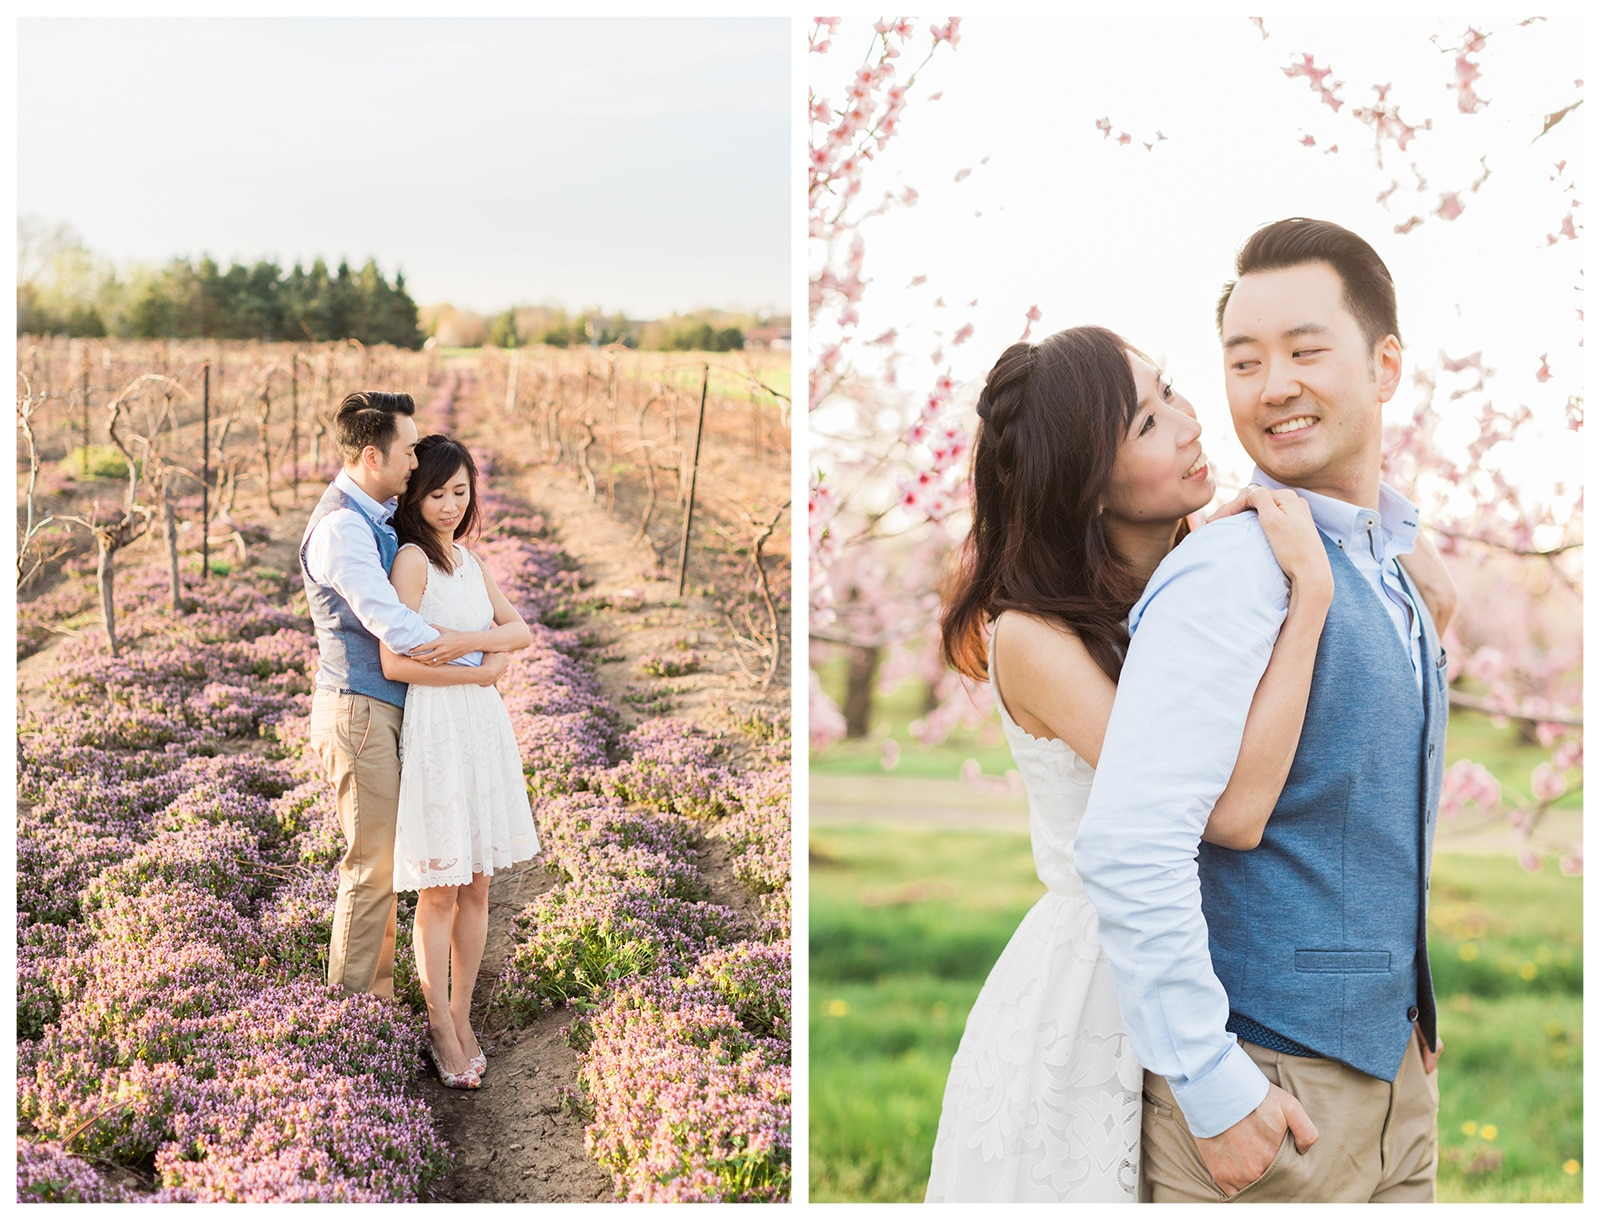 Niagara Spring Blossom Engagement Photos